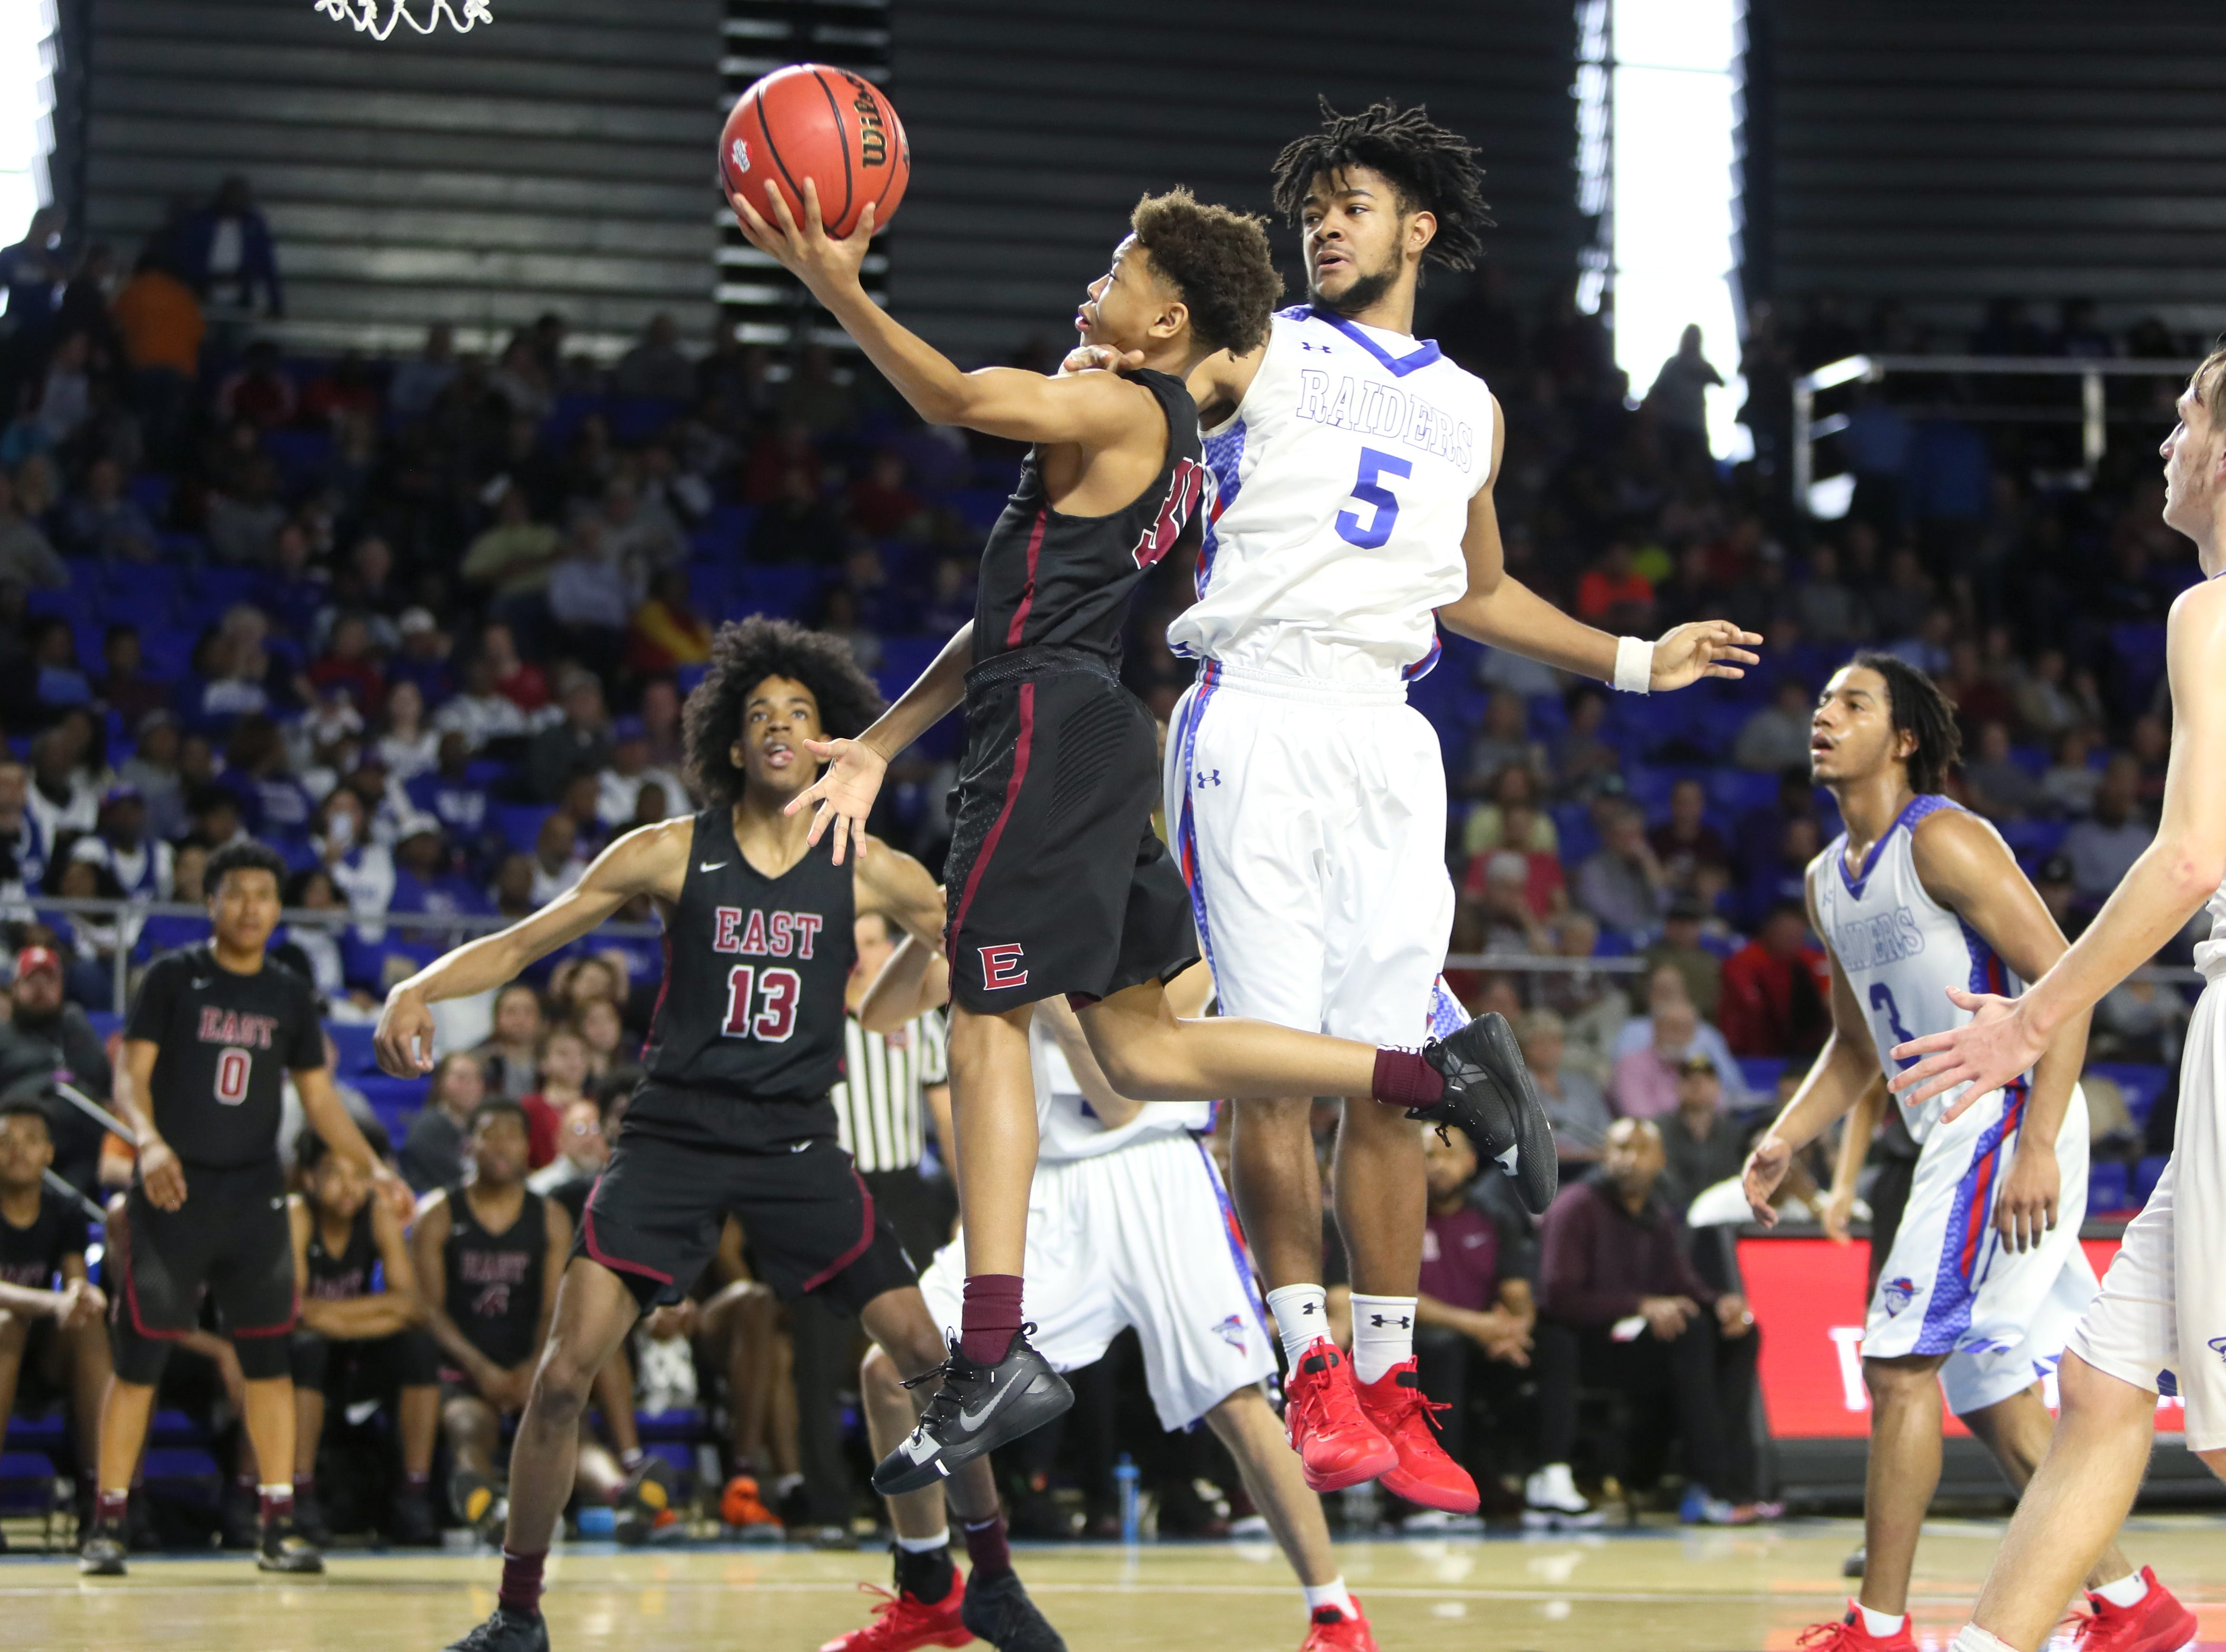 Memphis East's Terrence Jacobs lays the ball up past Cleveland's Darius Howard during the TSSAA Division I basketball state tournament at the Murphy Center in Murfreesboro, Tenn. on Thursday, March 14, 2019.